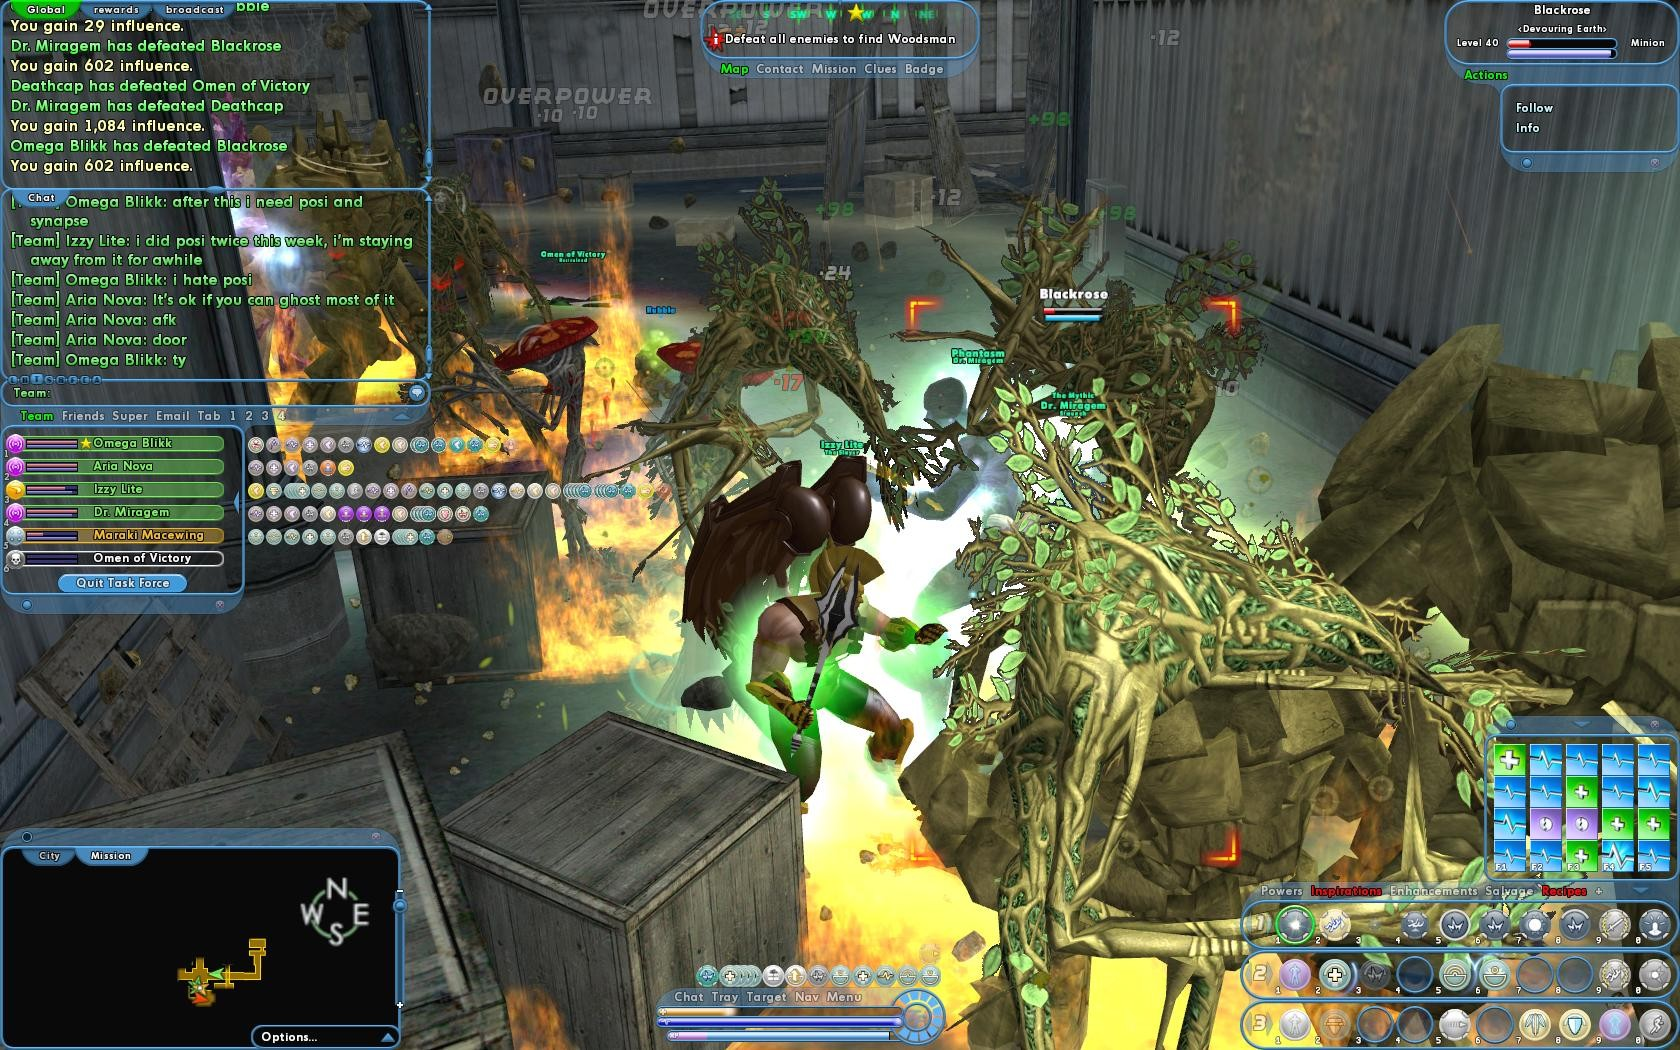 City of Heroes - Defeat All Enemies to Find Woodsman